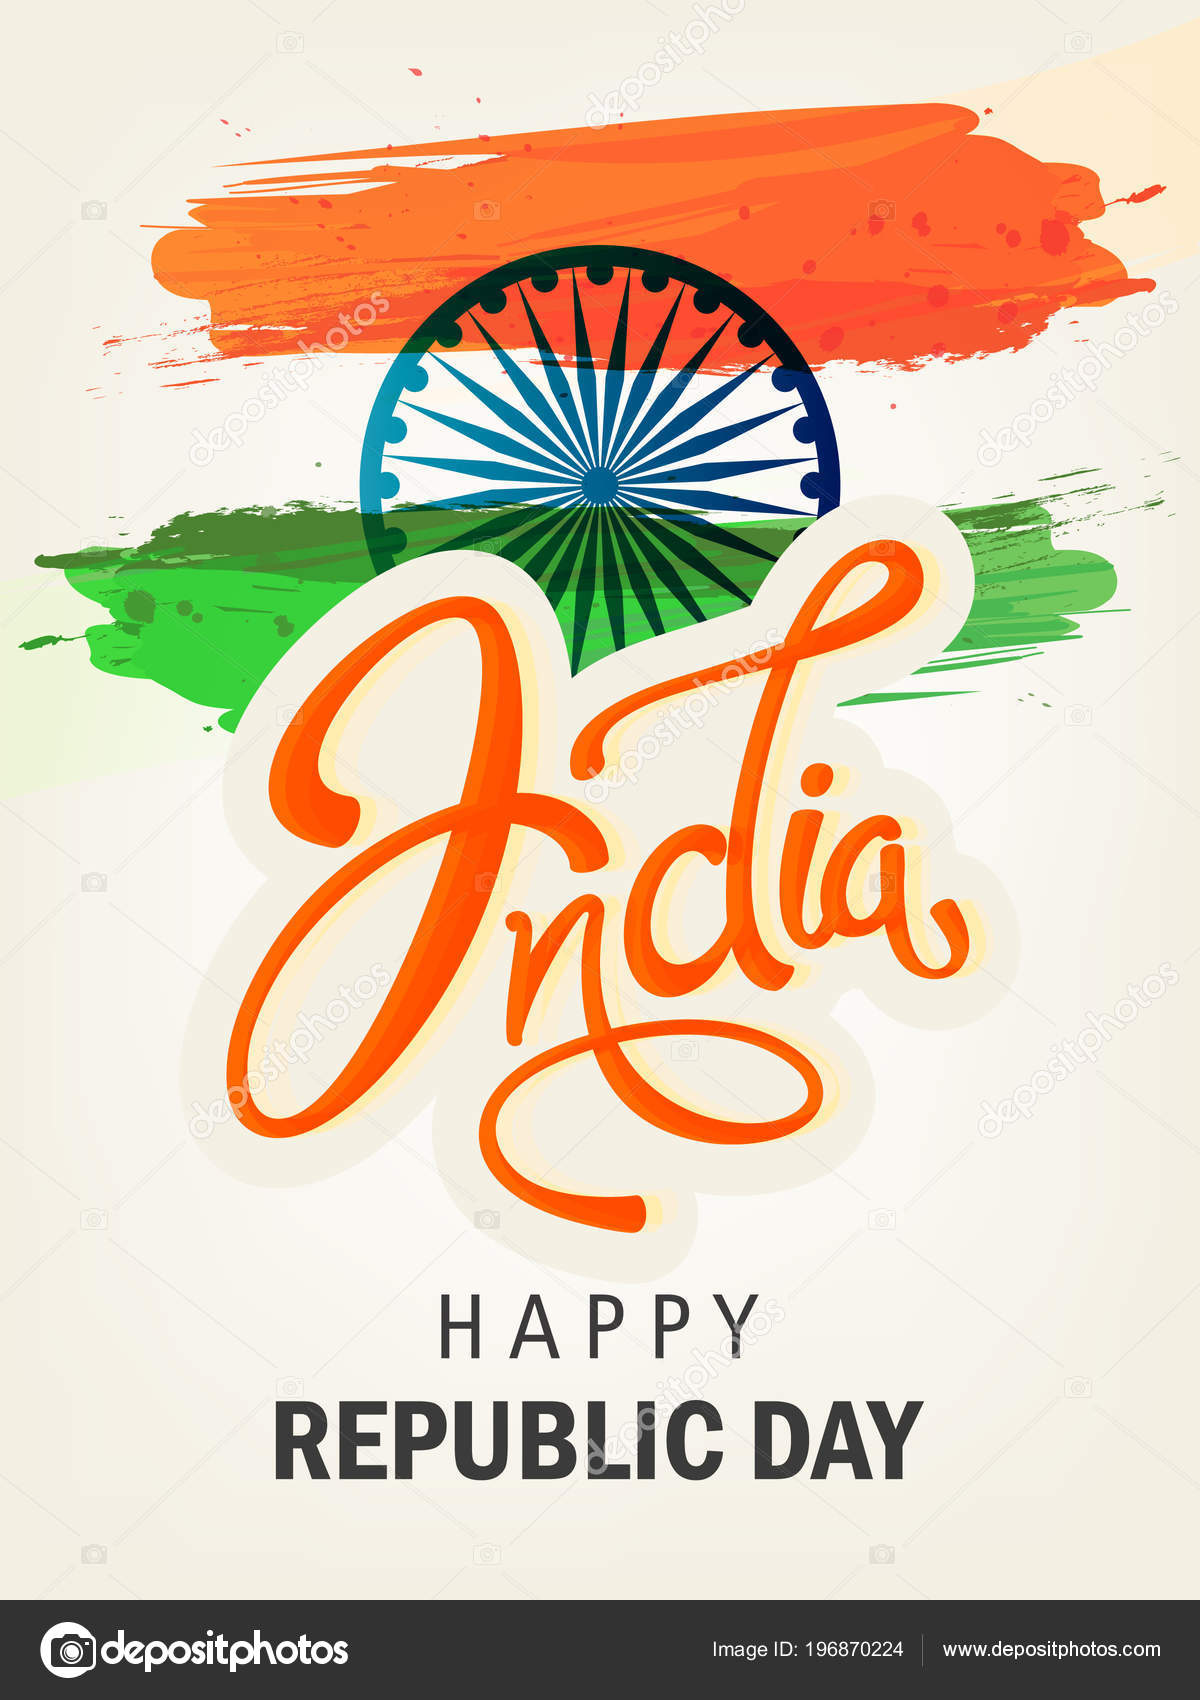 Greeting Card Republic Day Constitution India Festival Stock